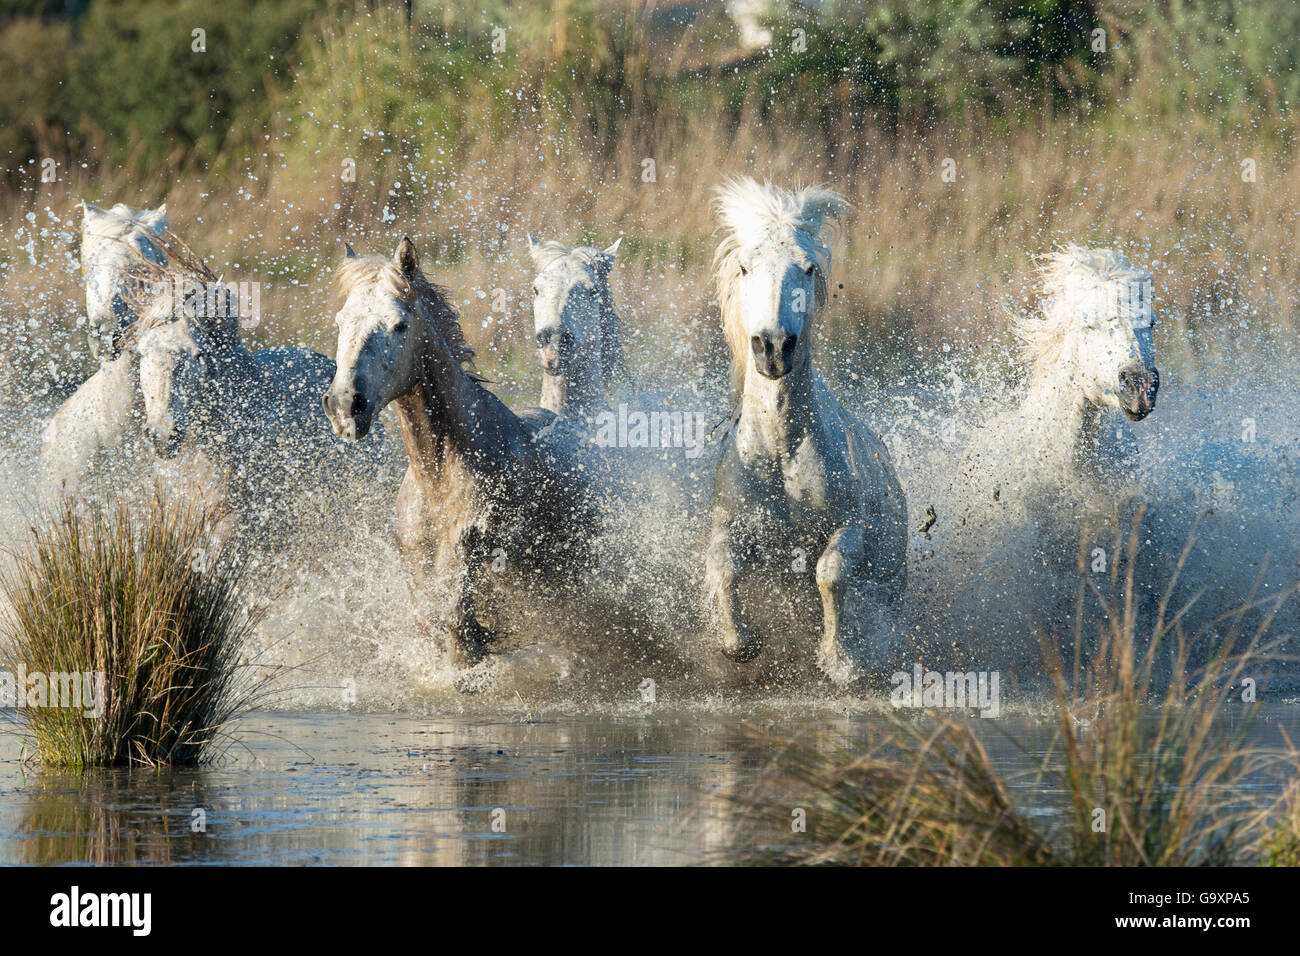 White horses of the Camargue galloping through marshes in the Camargue, France. April. - Stock Image